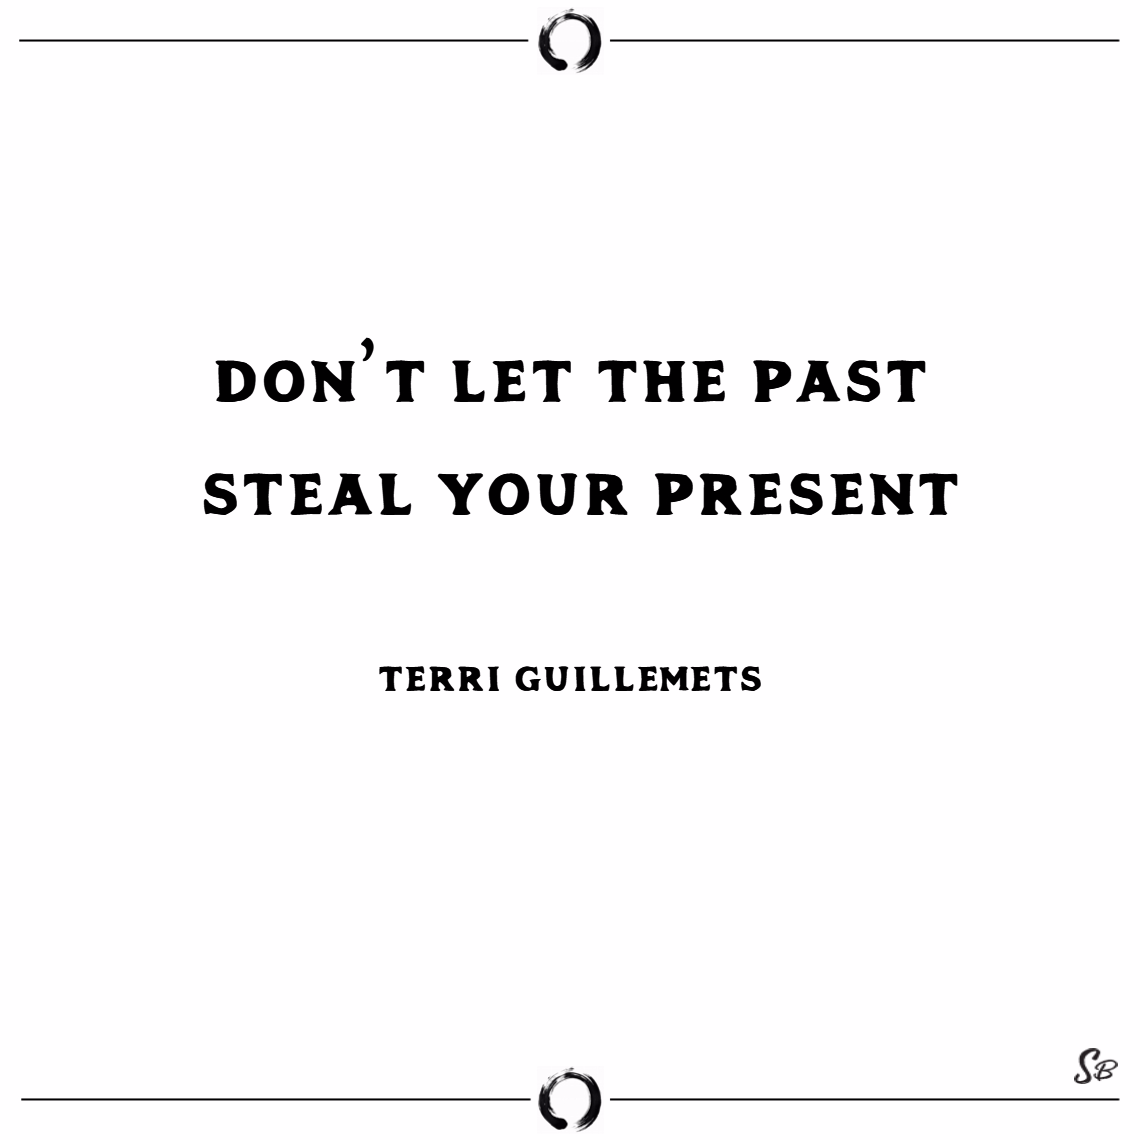 Don't let the past steal your present. – terri guillemets